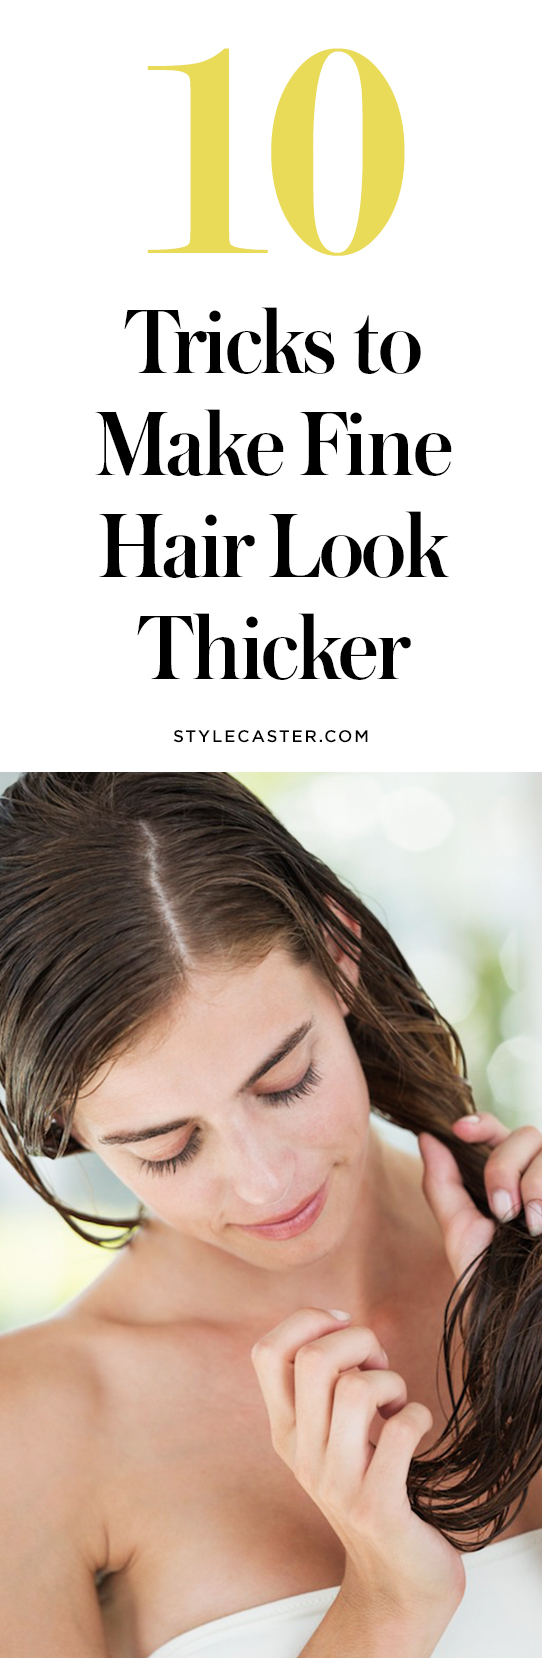 10 tricks to make fine hair look thicker   @stylecaster